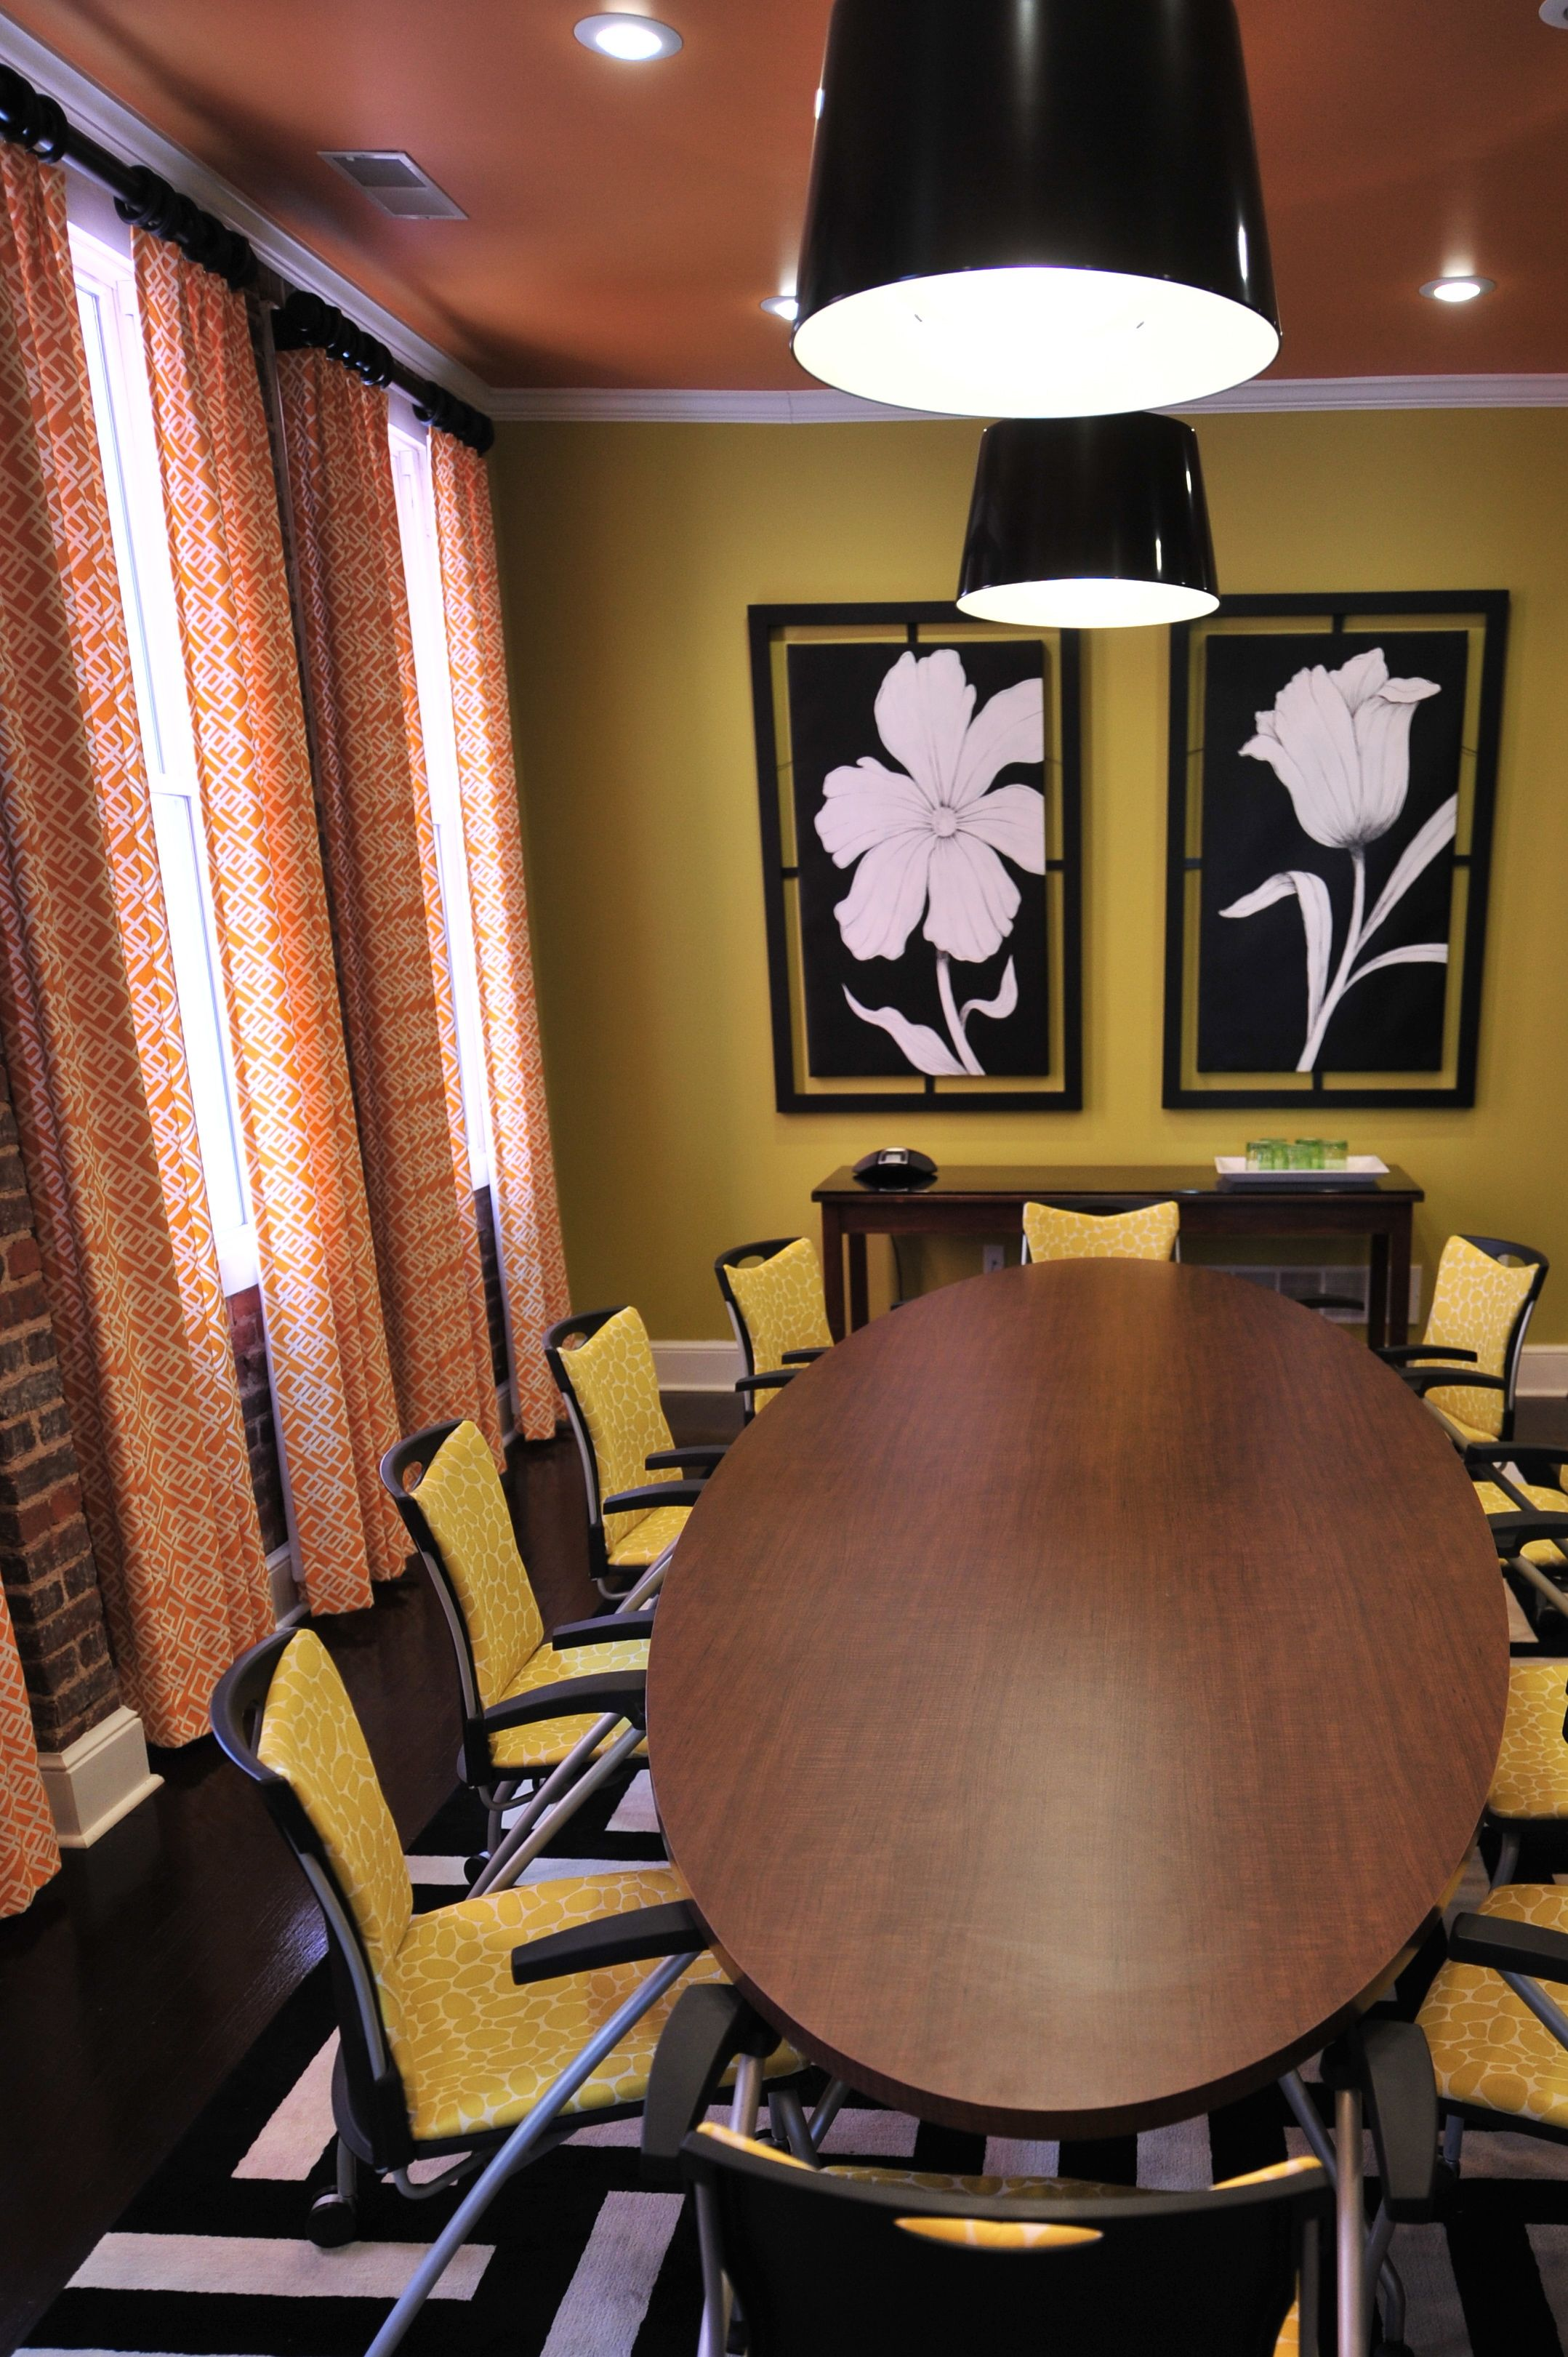 Conference Room Interior Design: Law Office Conference Room. Interior Design By Alisha Gwen